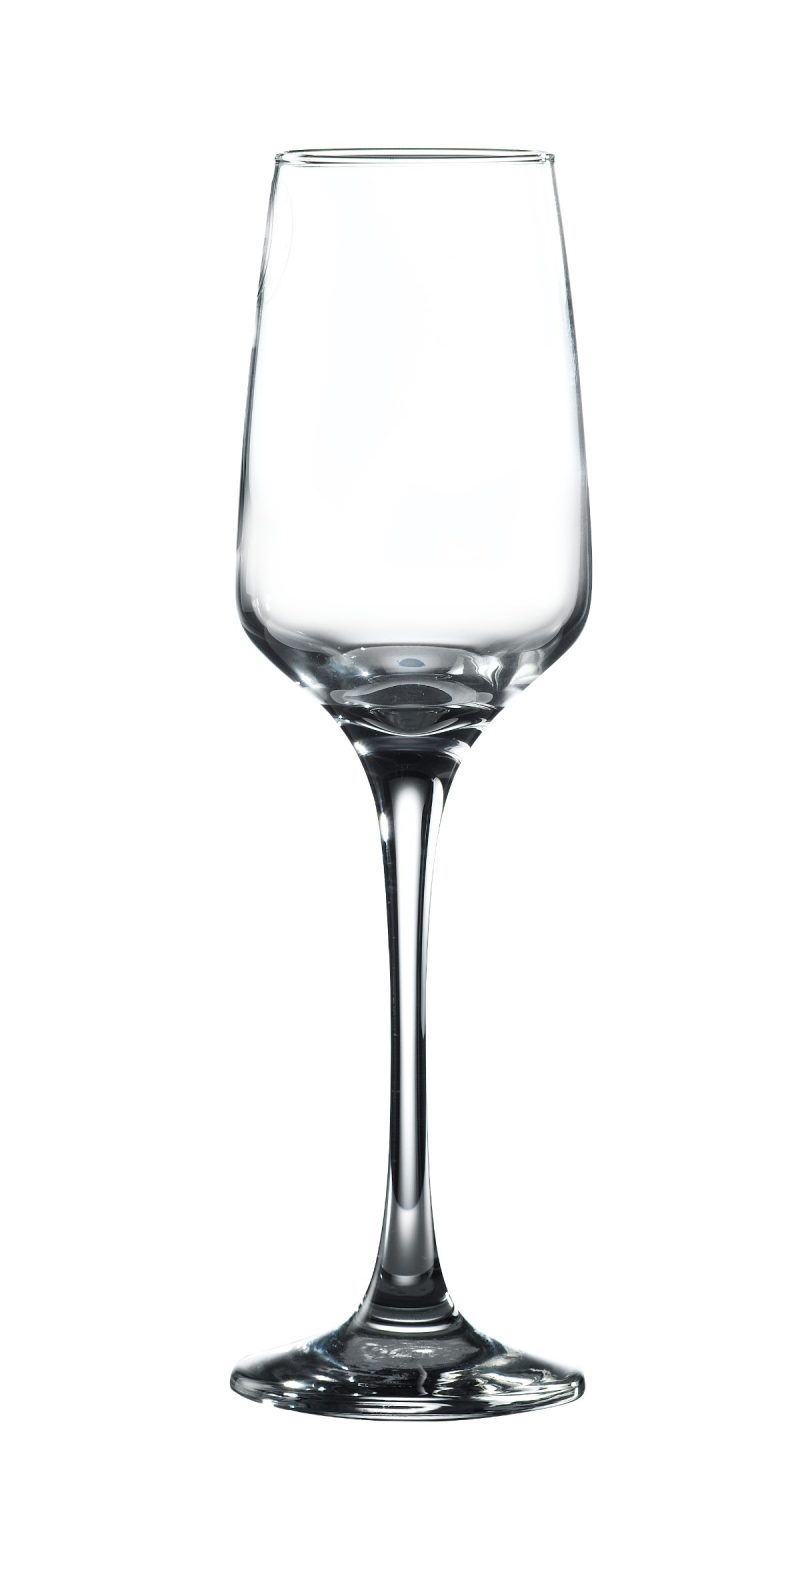 Lal Champagne / Wine Glass 23cl / 8oz